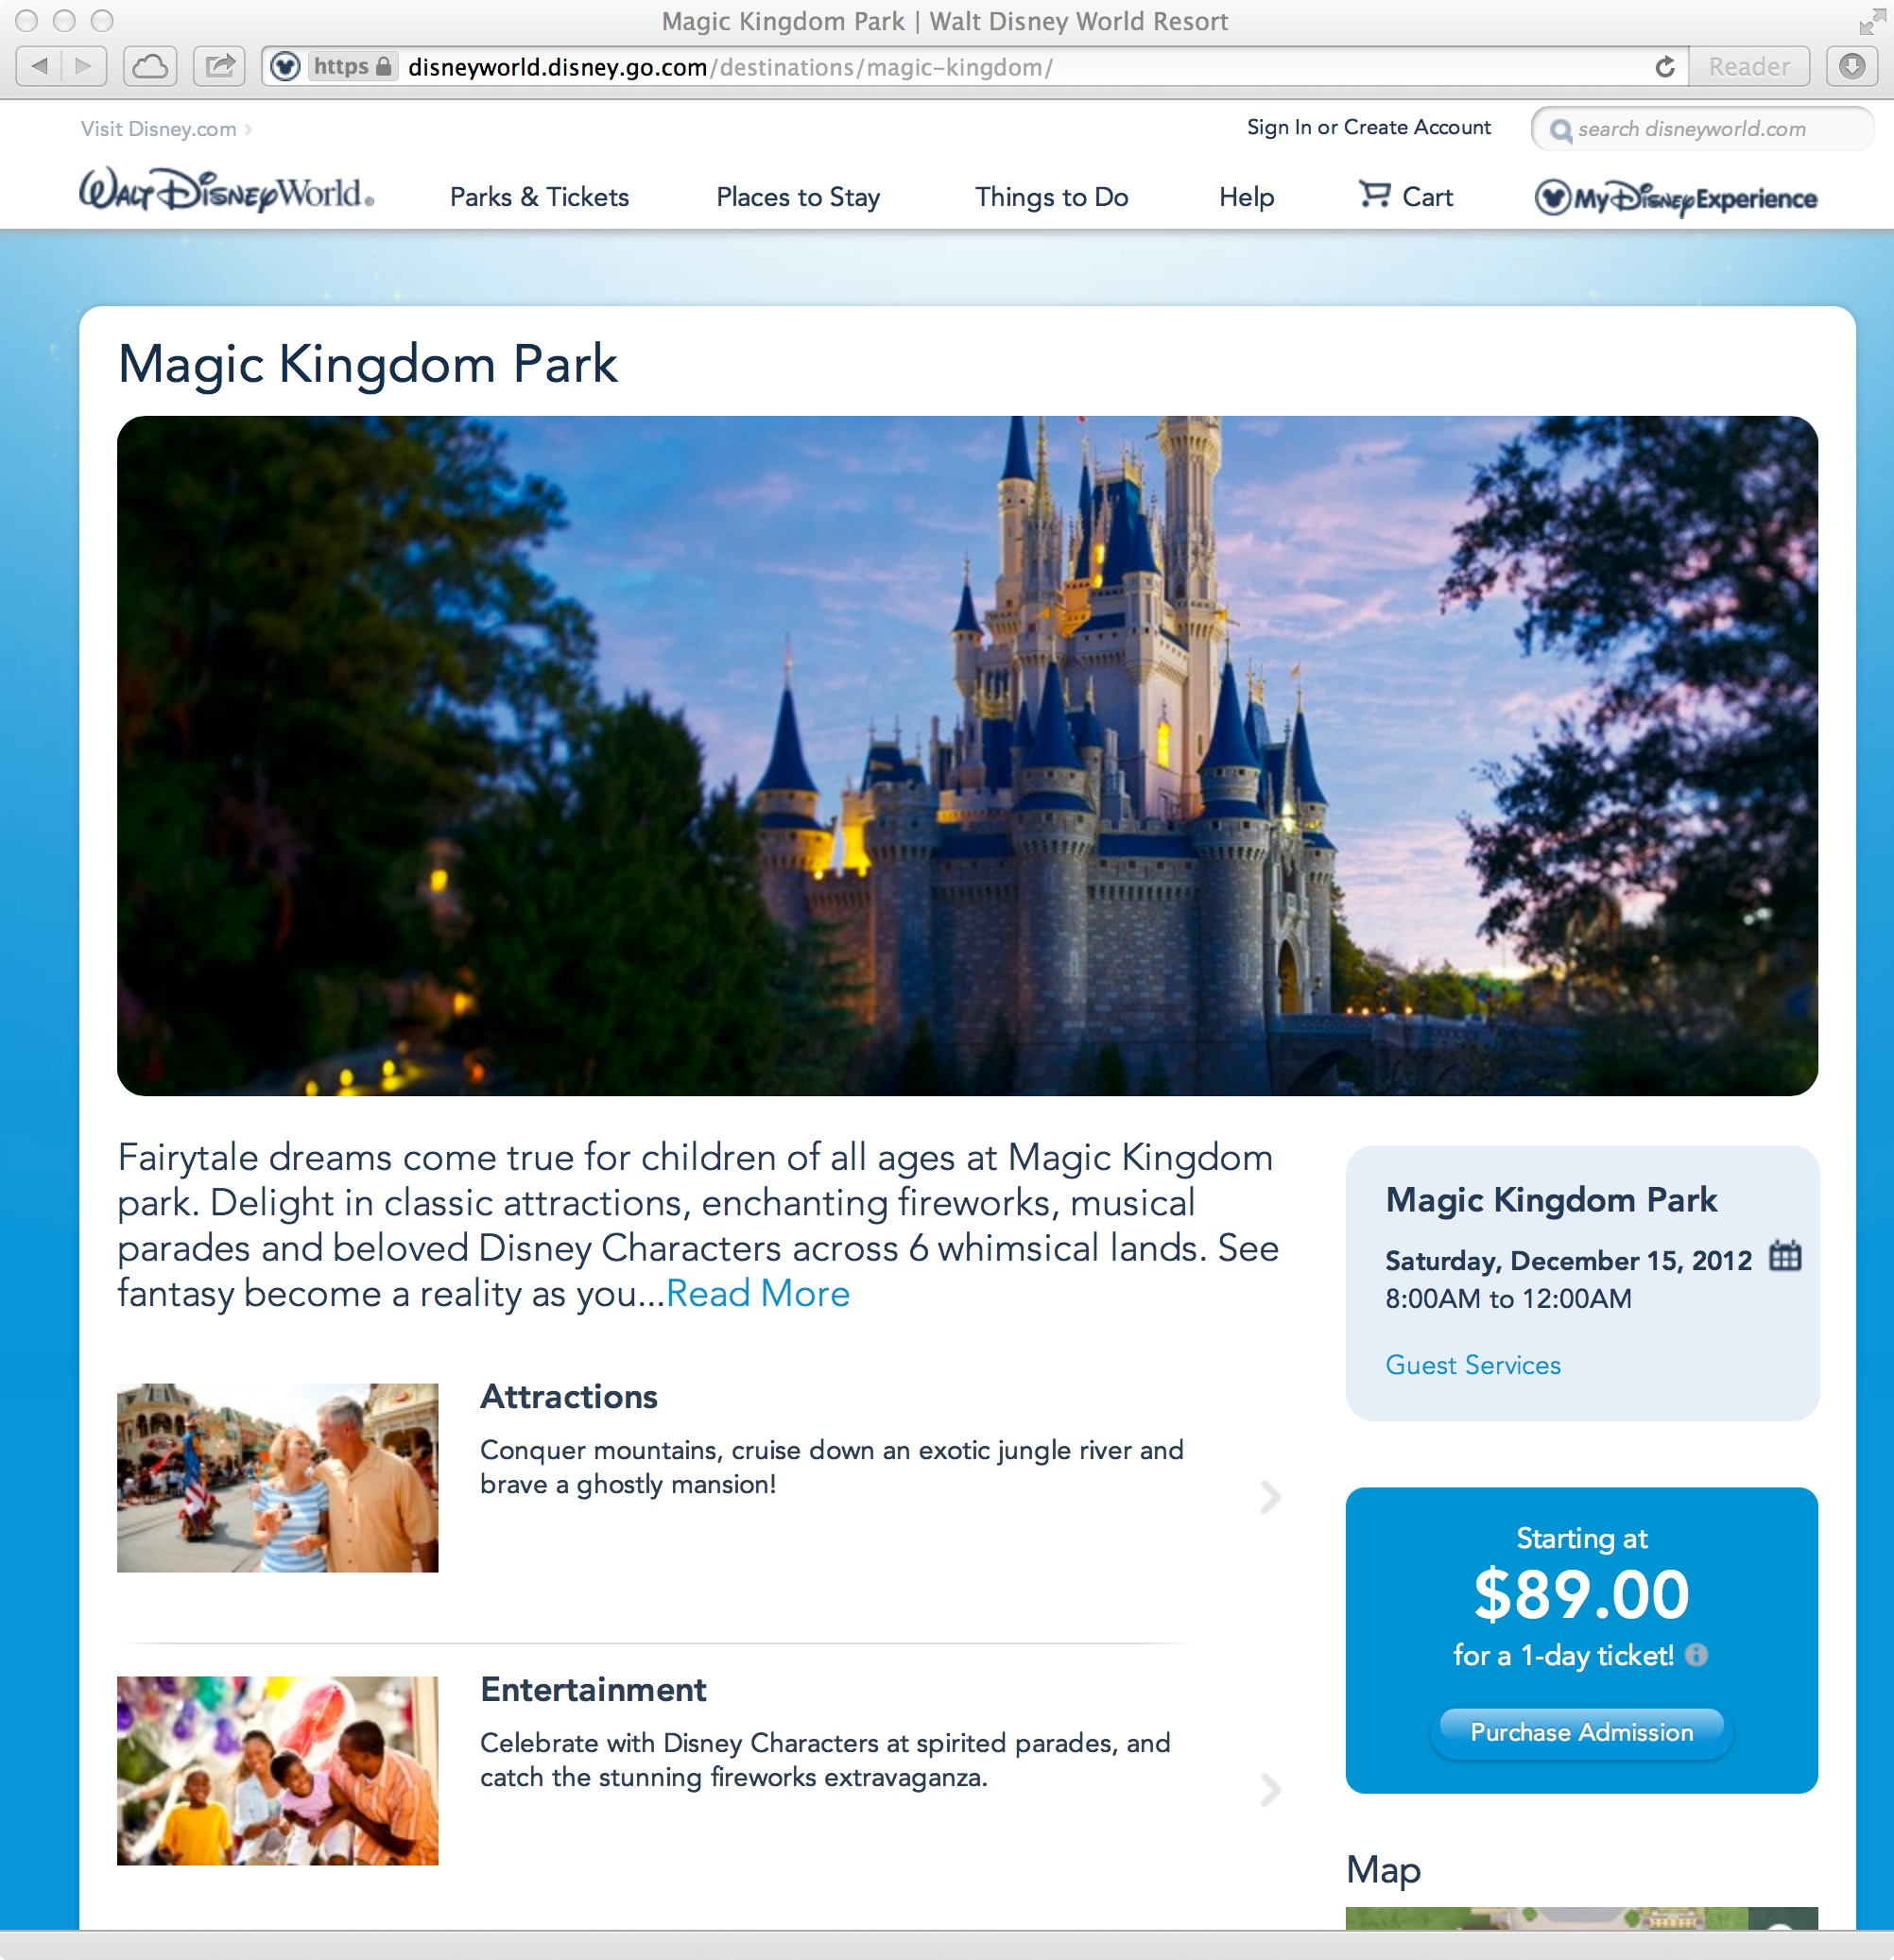 In addition, the Park Hopper Plus Option includes a certain number of visits to other Walt Disney World fun based on the length of your ticket. For example, a 4-day ticket allows 4 visits and a 5-day ticket allows 5 visits. For each Park Hopper Plus visit, you can choose one of the following.